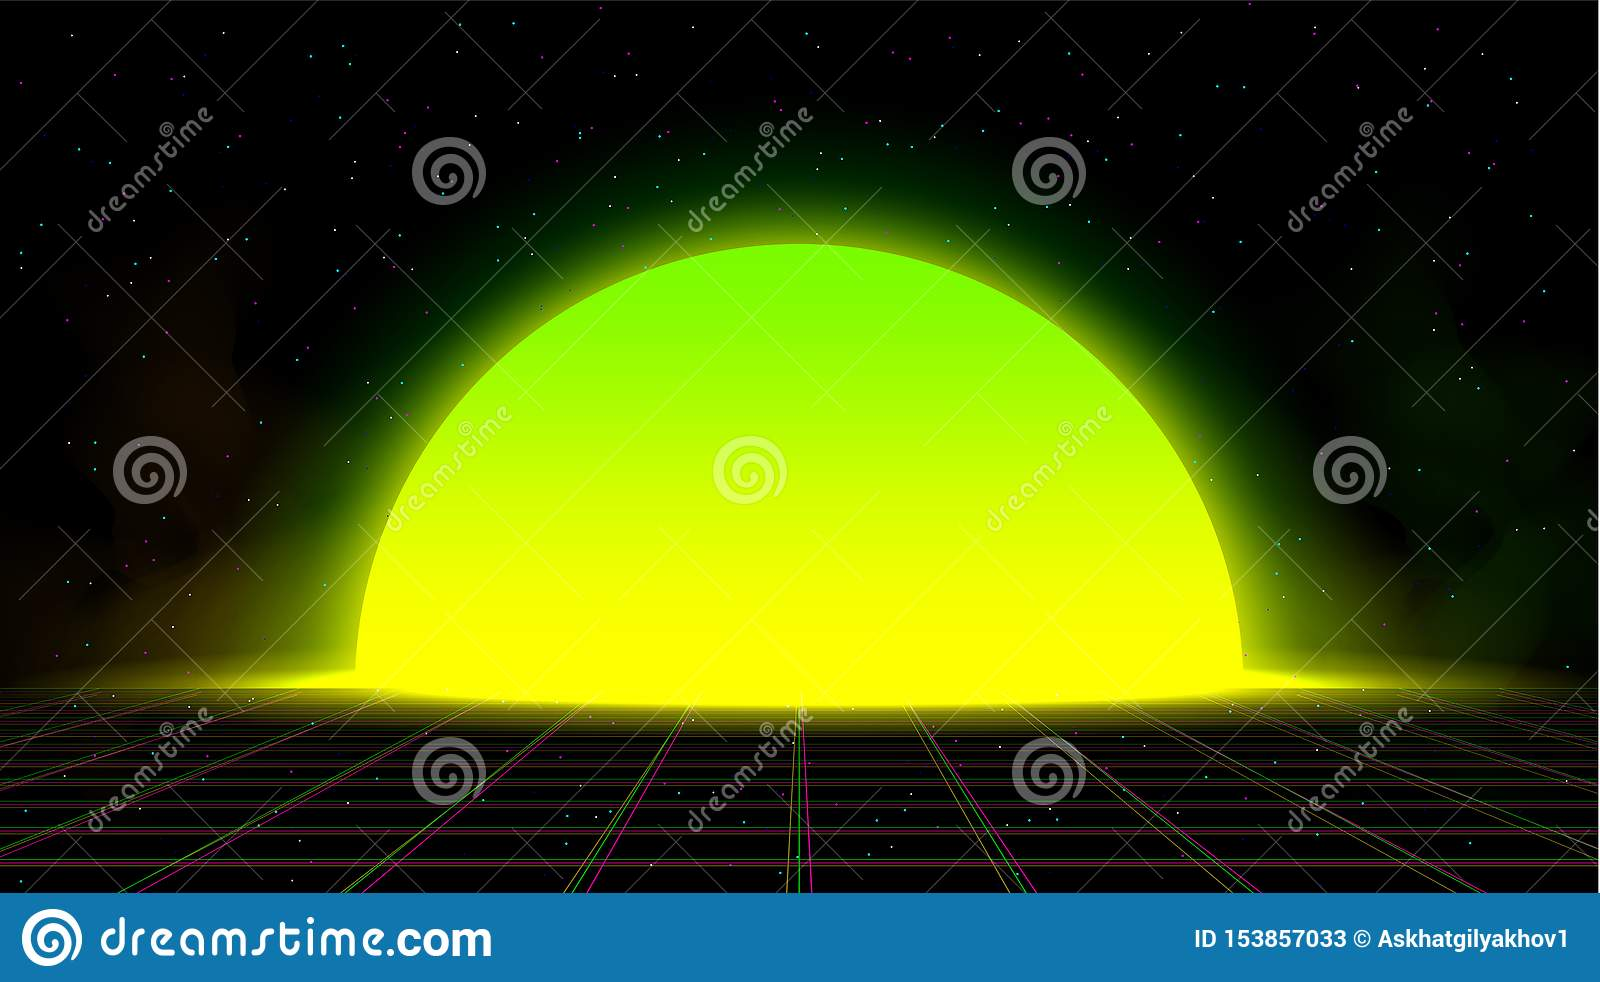 synthwave vaporwave retrowave yellow green sunset background glitch laser grid starry sky smoke design poster cover 153857033